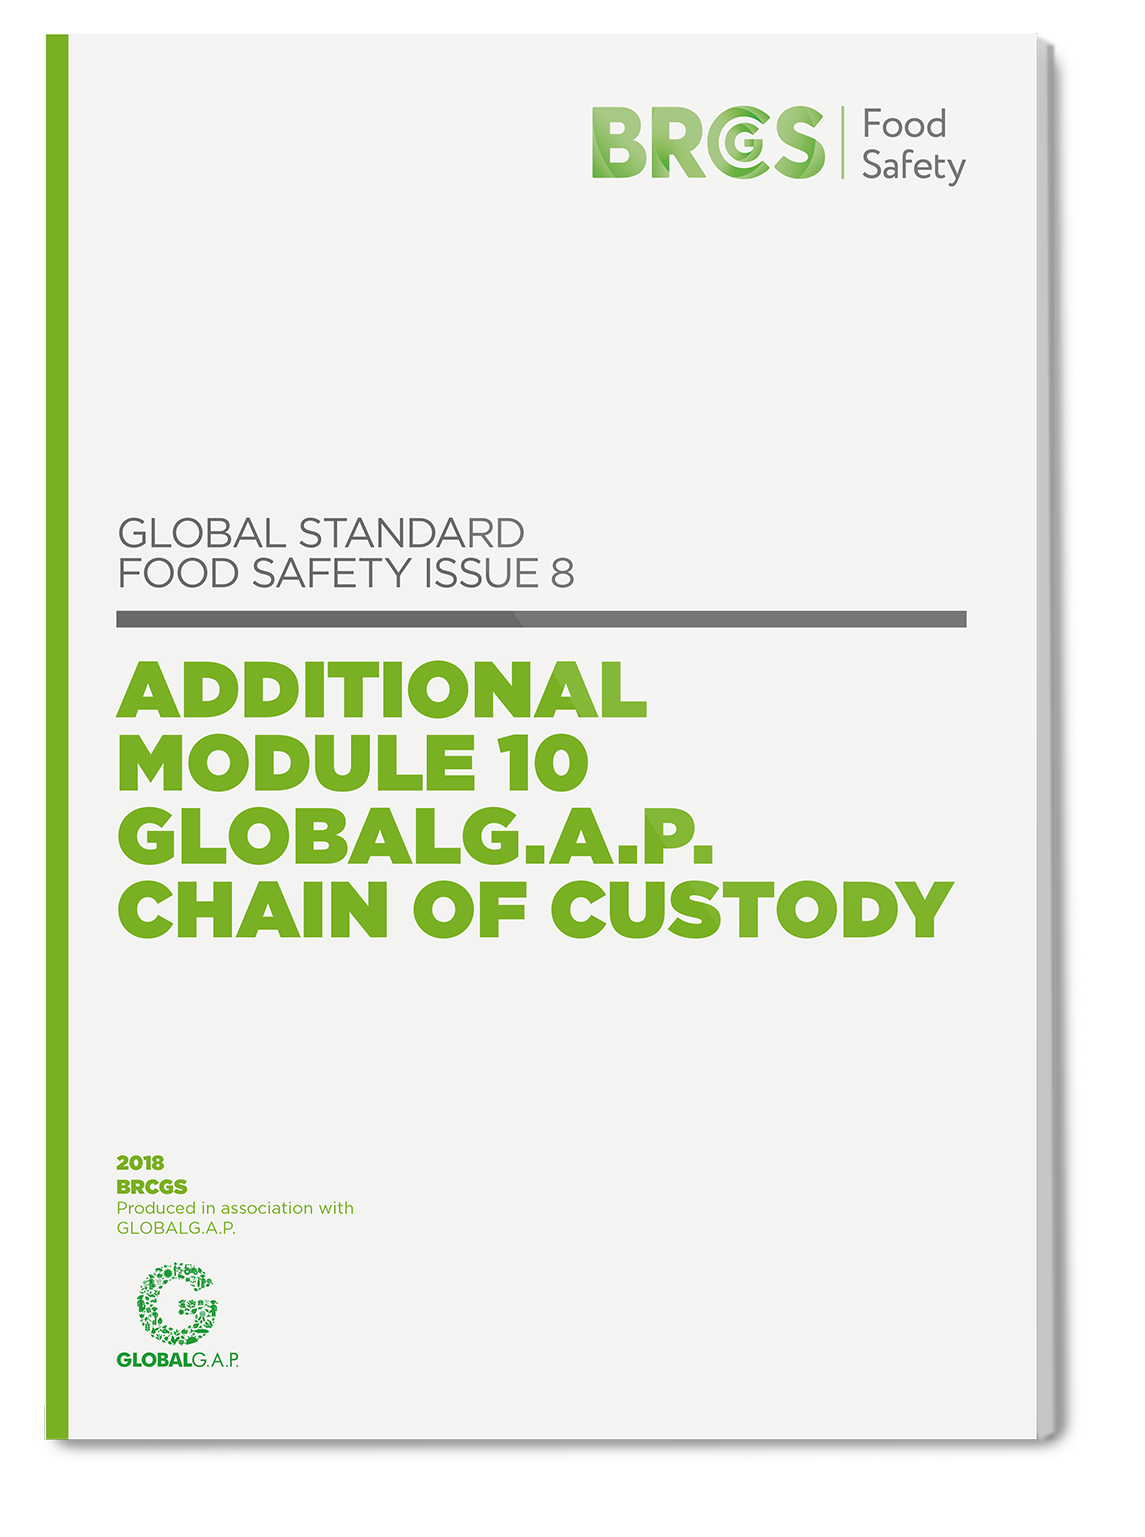 Global Standard Food Safety Issue 8 Additional Module 10 GLOBAL G.A.P. Chain of Custody